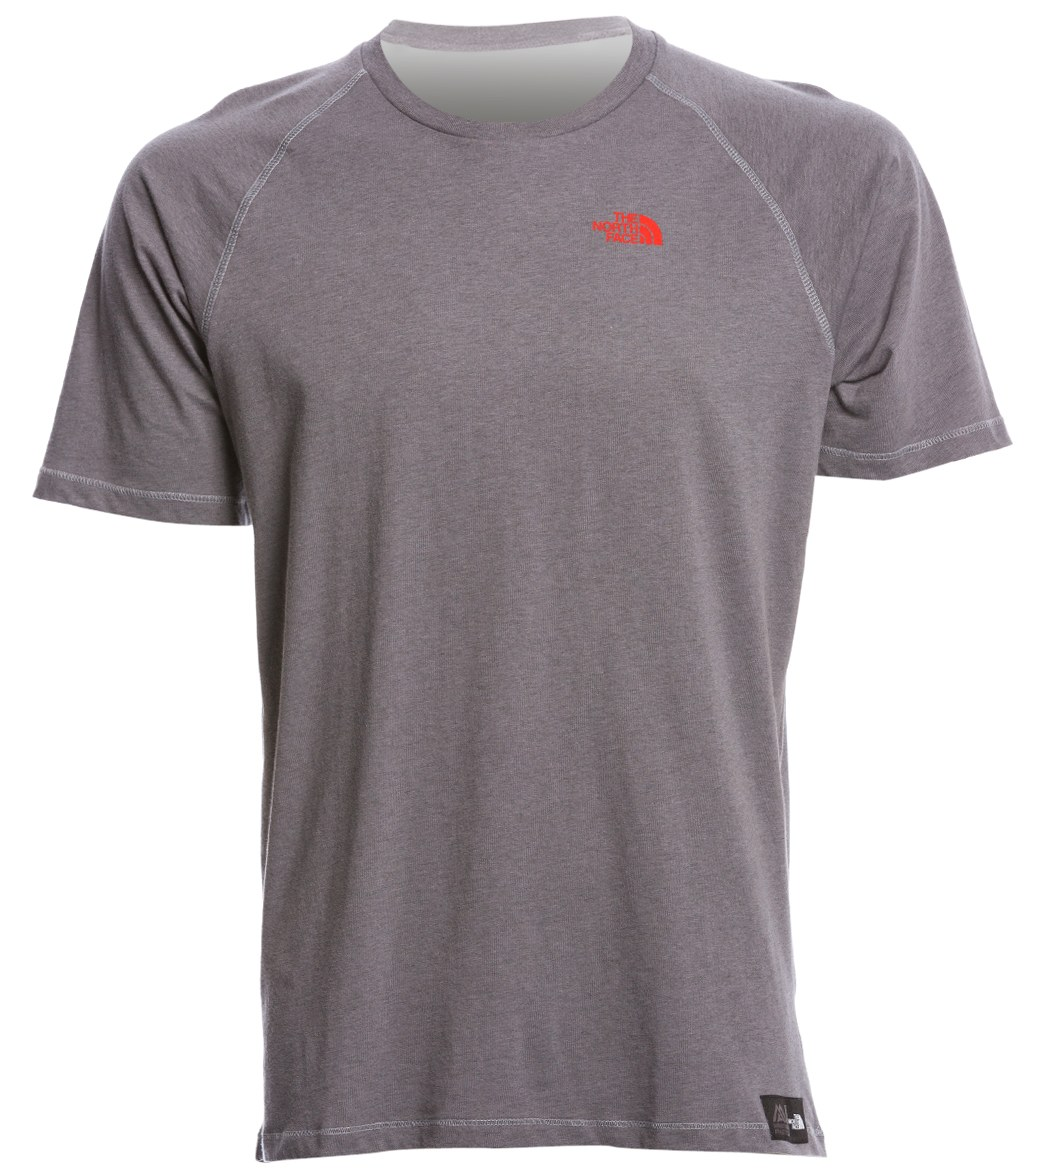 4644ef42e The North Face Men's Recking Short Sleeve Crew at SwimOutlet.com